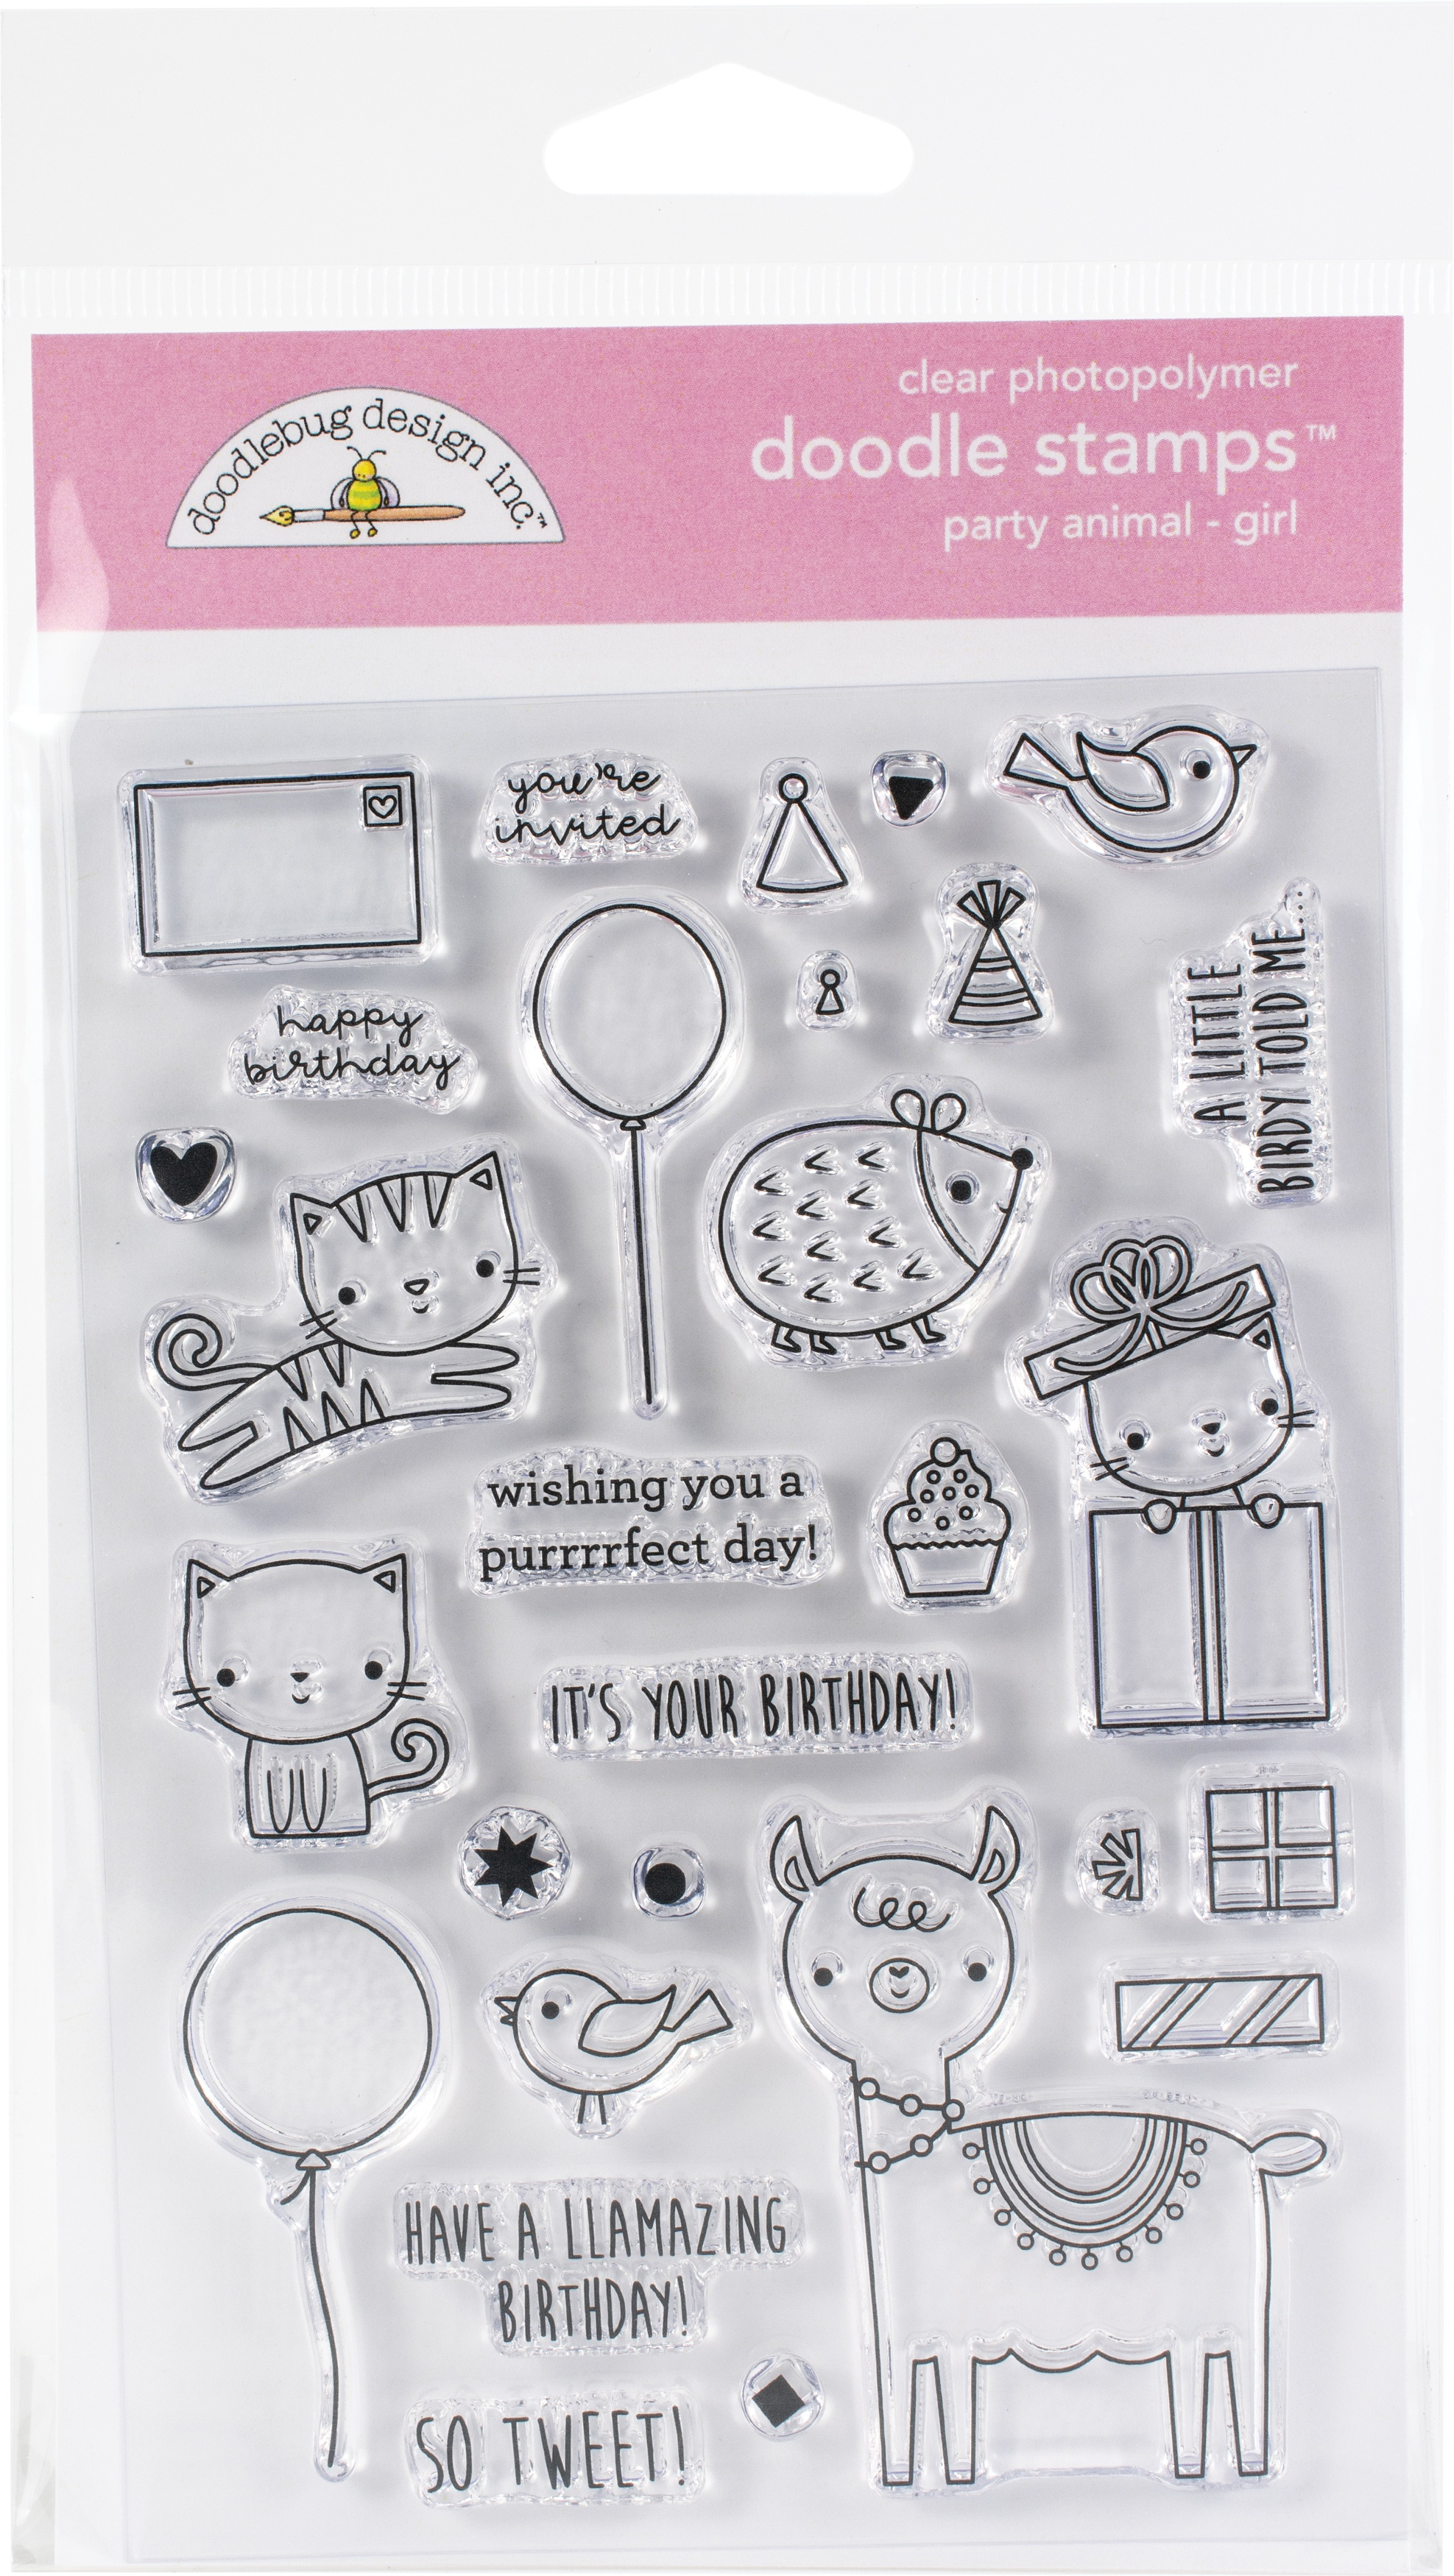 Doodlebug Clear Doodle Stamps-Party Animal-Girl, Hey Cupcake